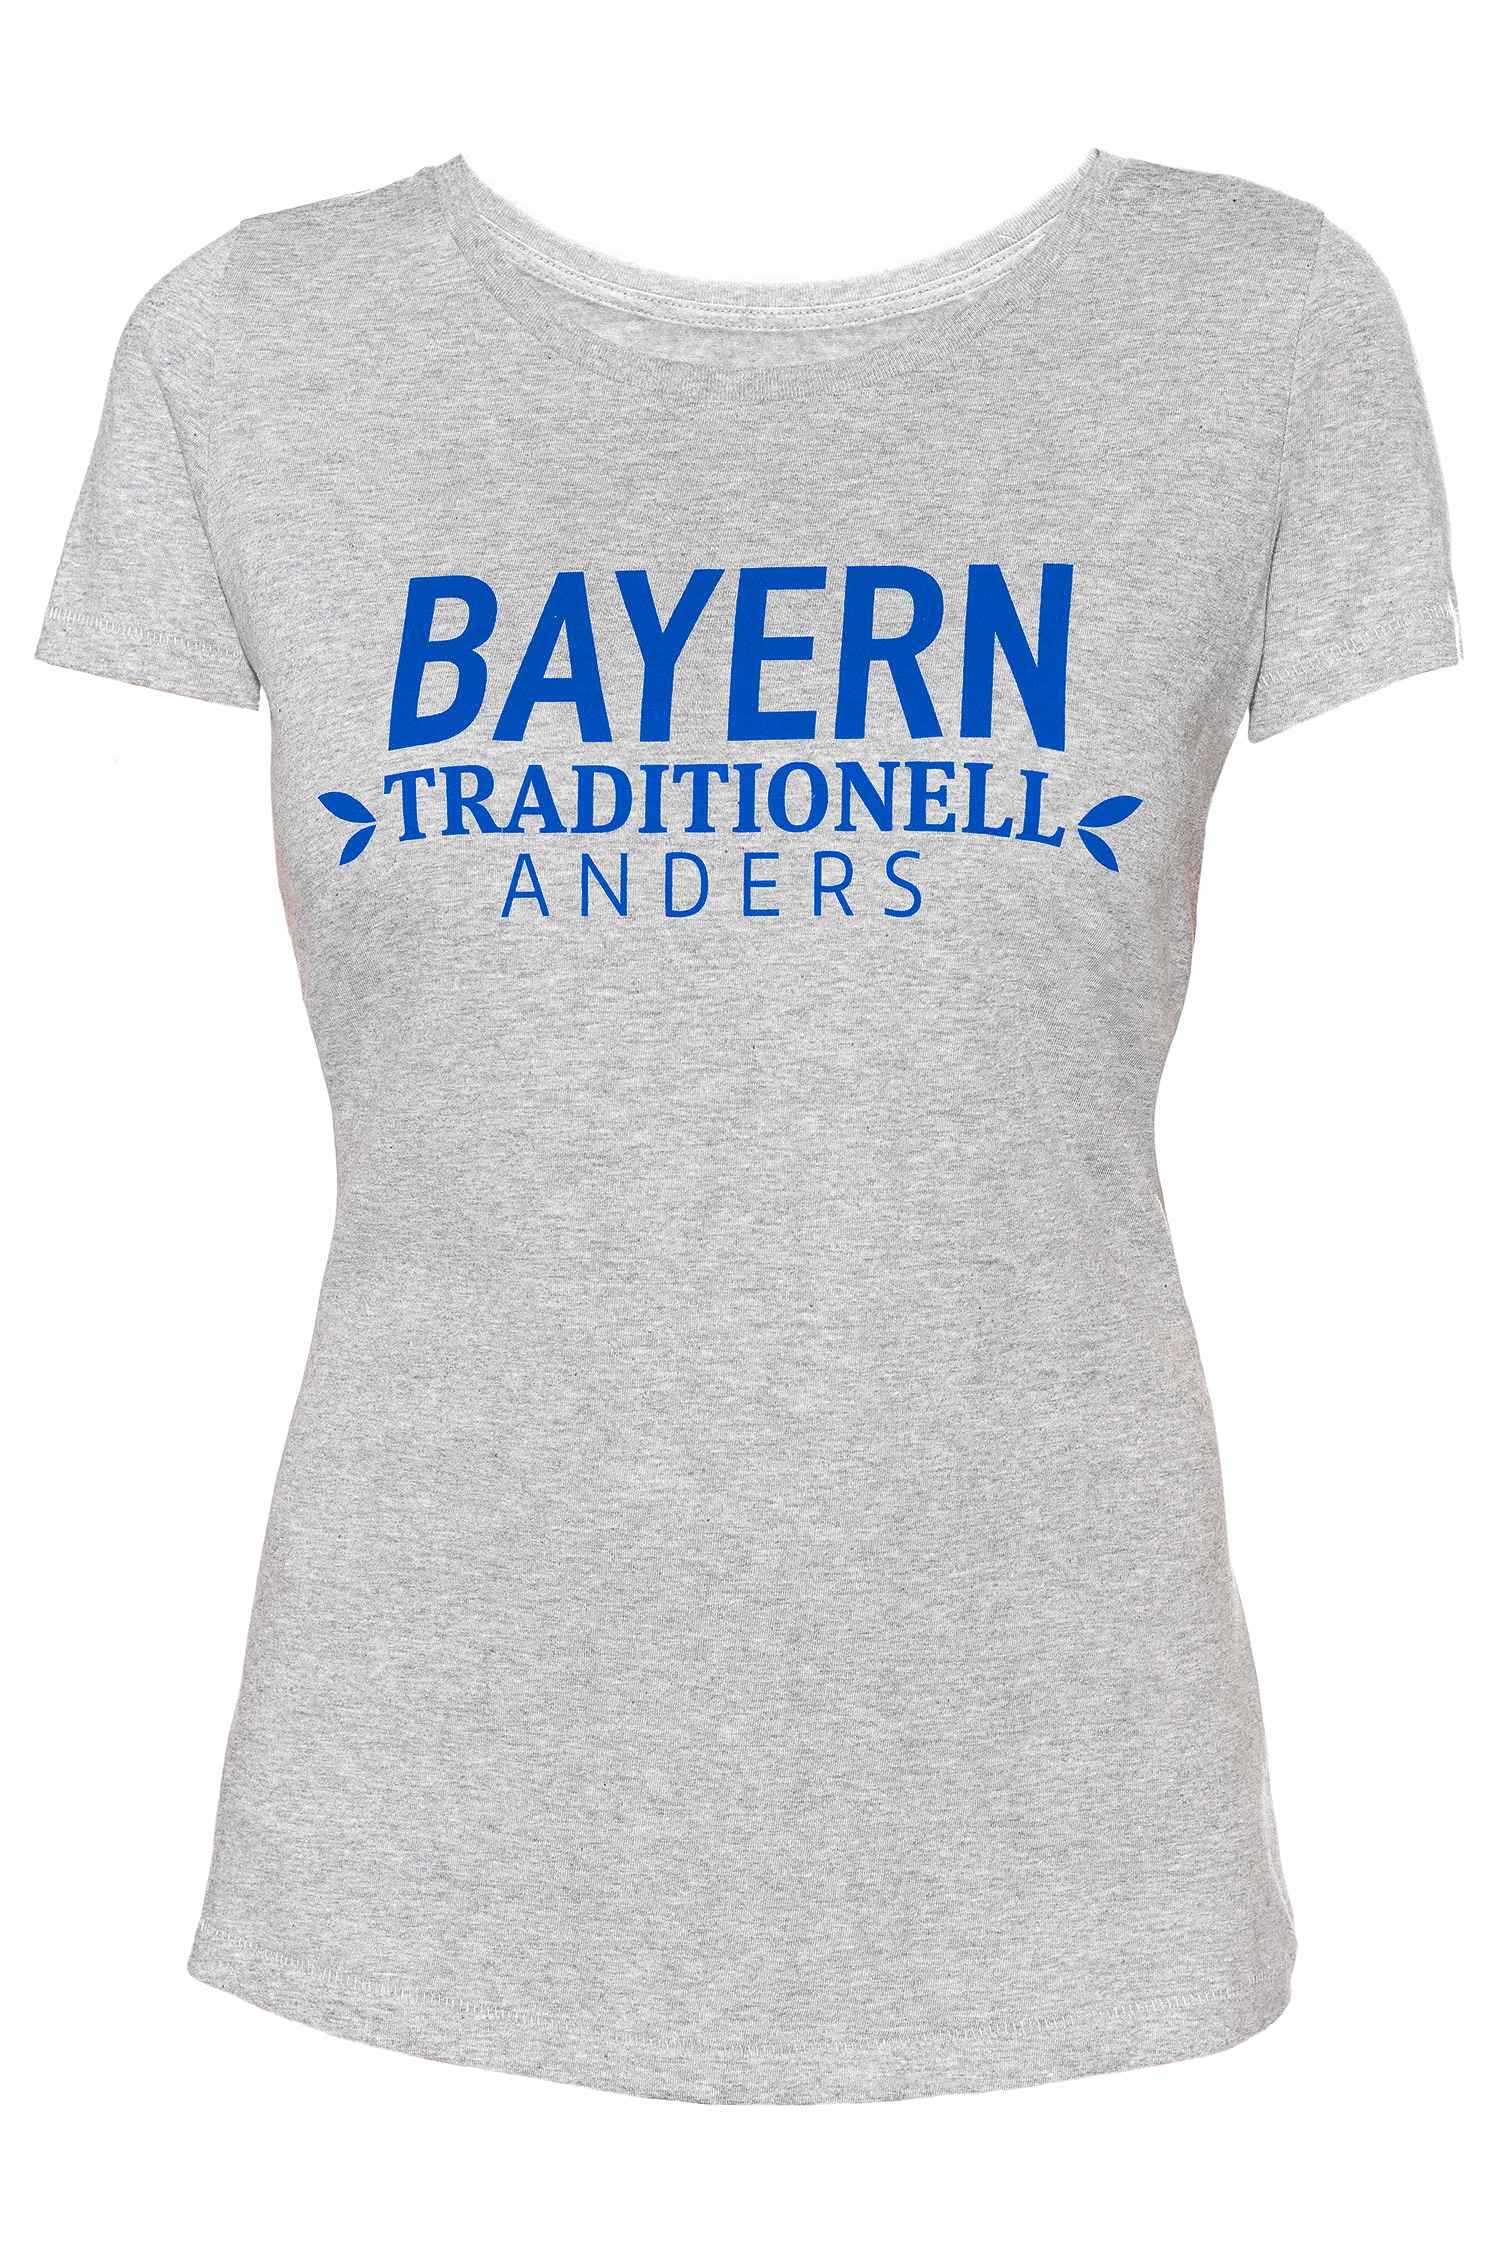 T-Shirt Bayern traditionell anders Damen XS | grau / blau